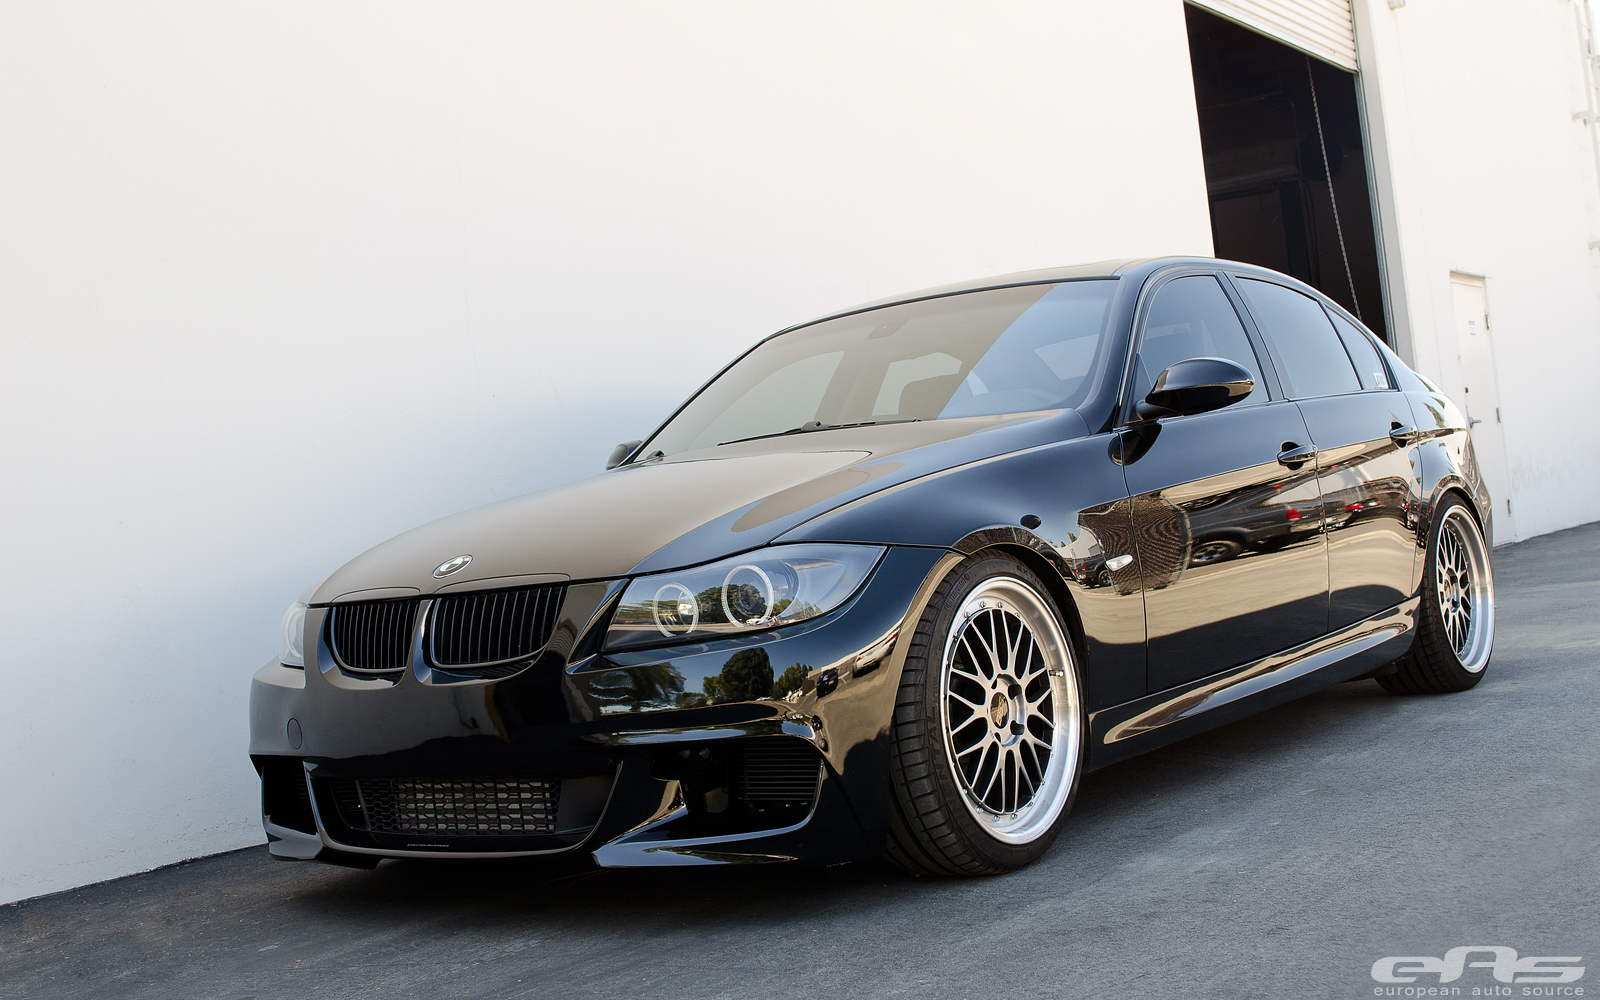 Extremely Tuned BMW E I Hails From EAS Autoevolution - 2008 bmw 335i aftermarket parts